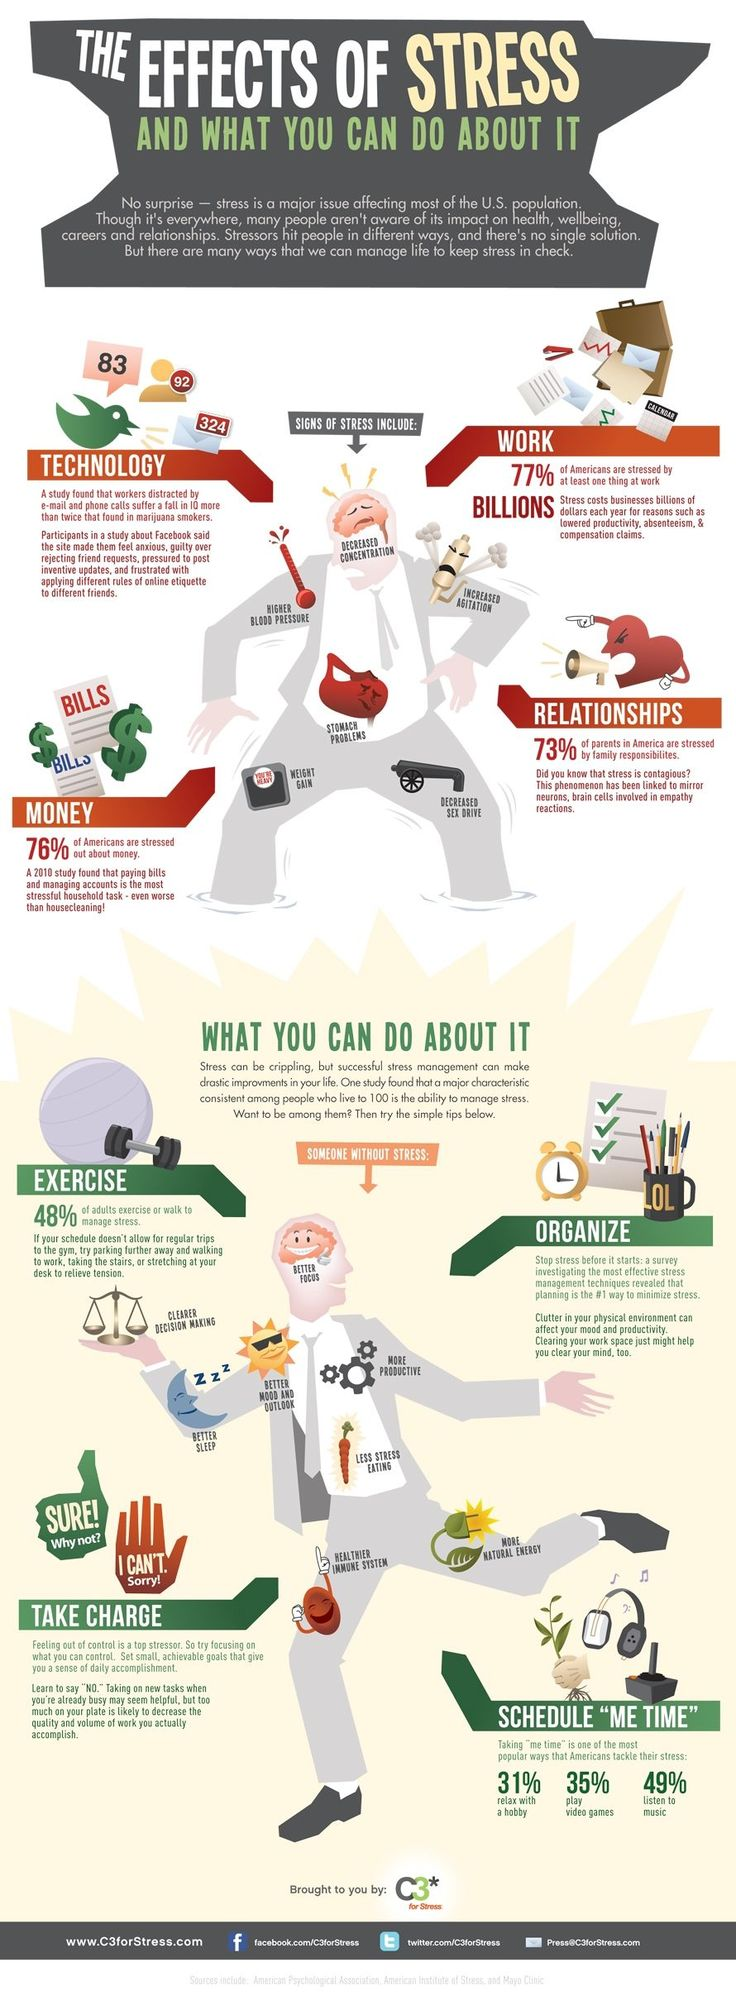 The effects of stress, and what you can do about it #infographic